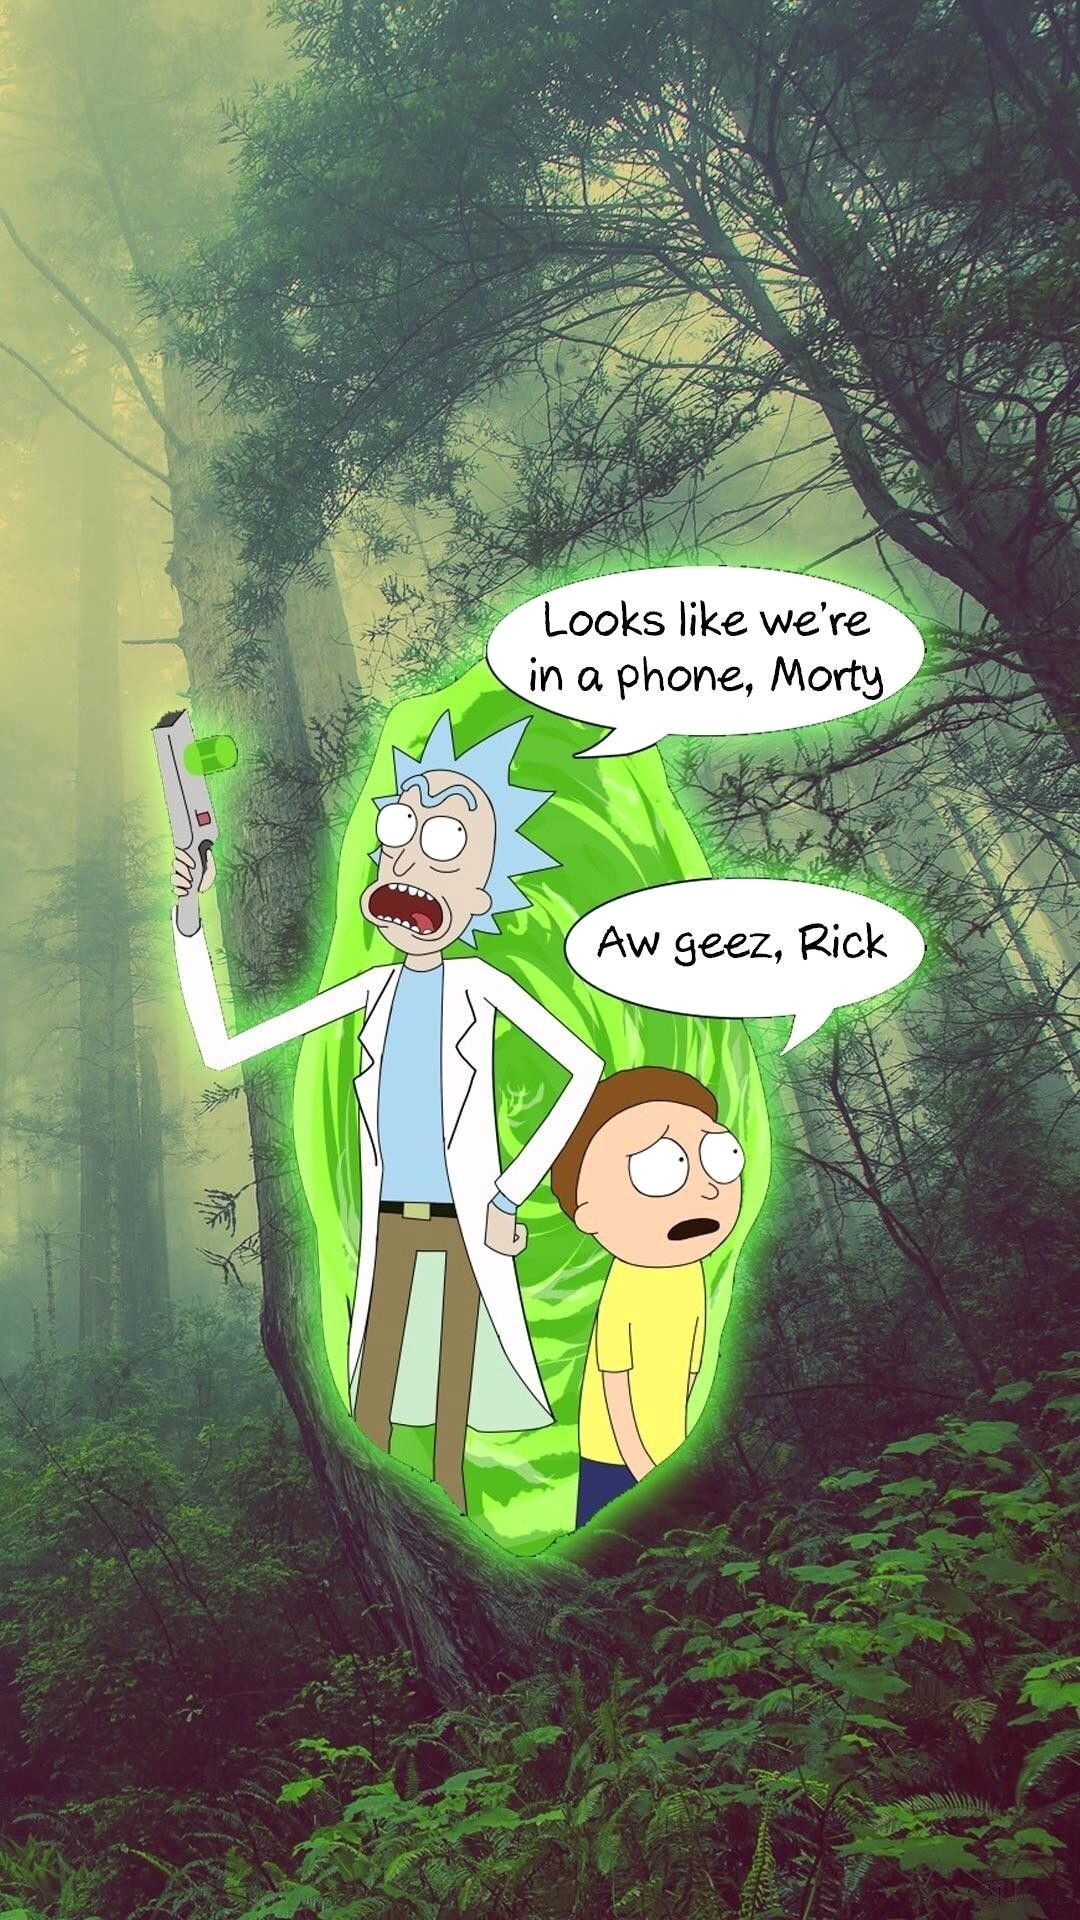 Rick And Morty Wallpaper Awesome Gravity Falls Wallpapers Phone Tablet In 2020 Trippy Cartoon Rick And Morty Poster Trippy Rick And Morty